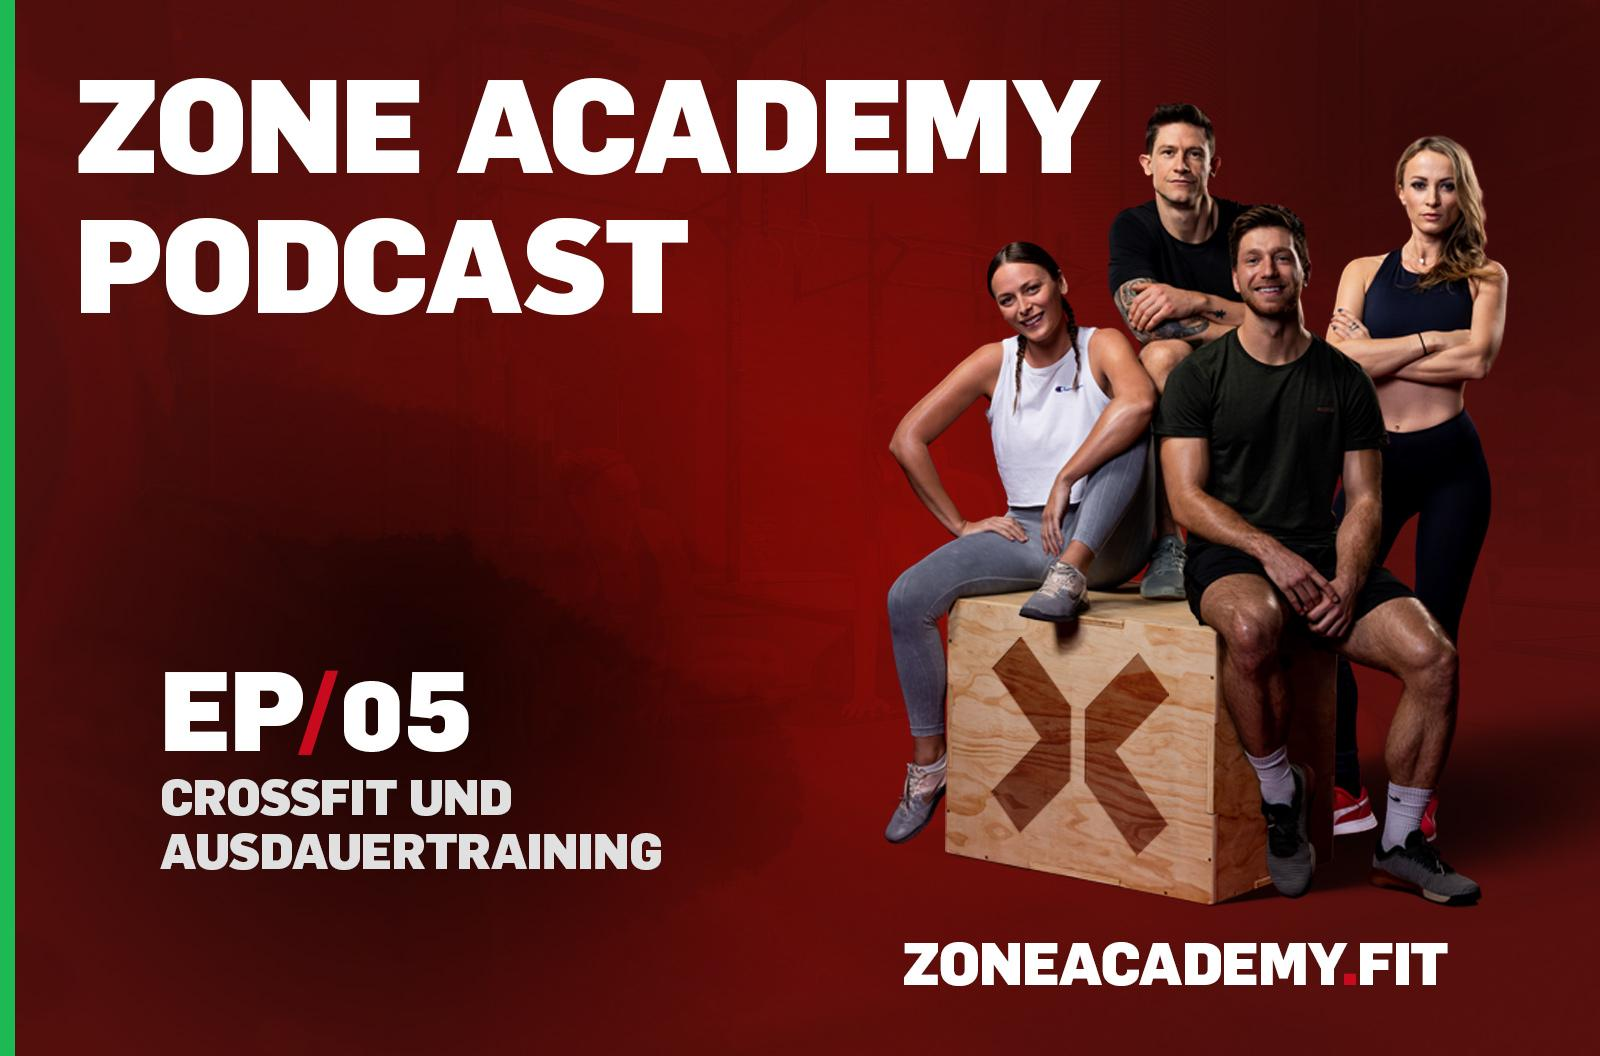 podcast zone academy